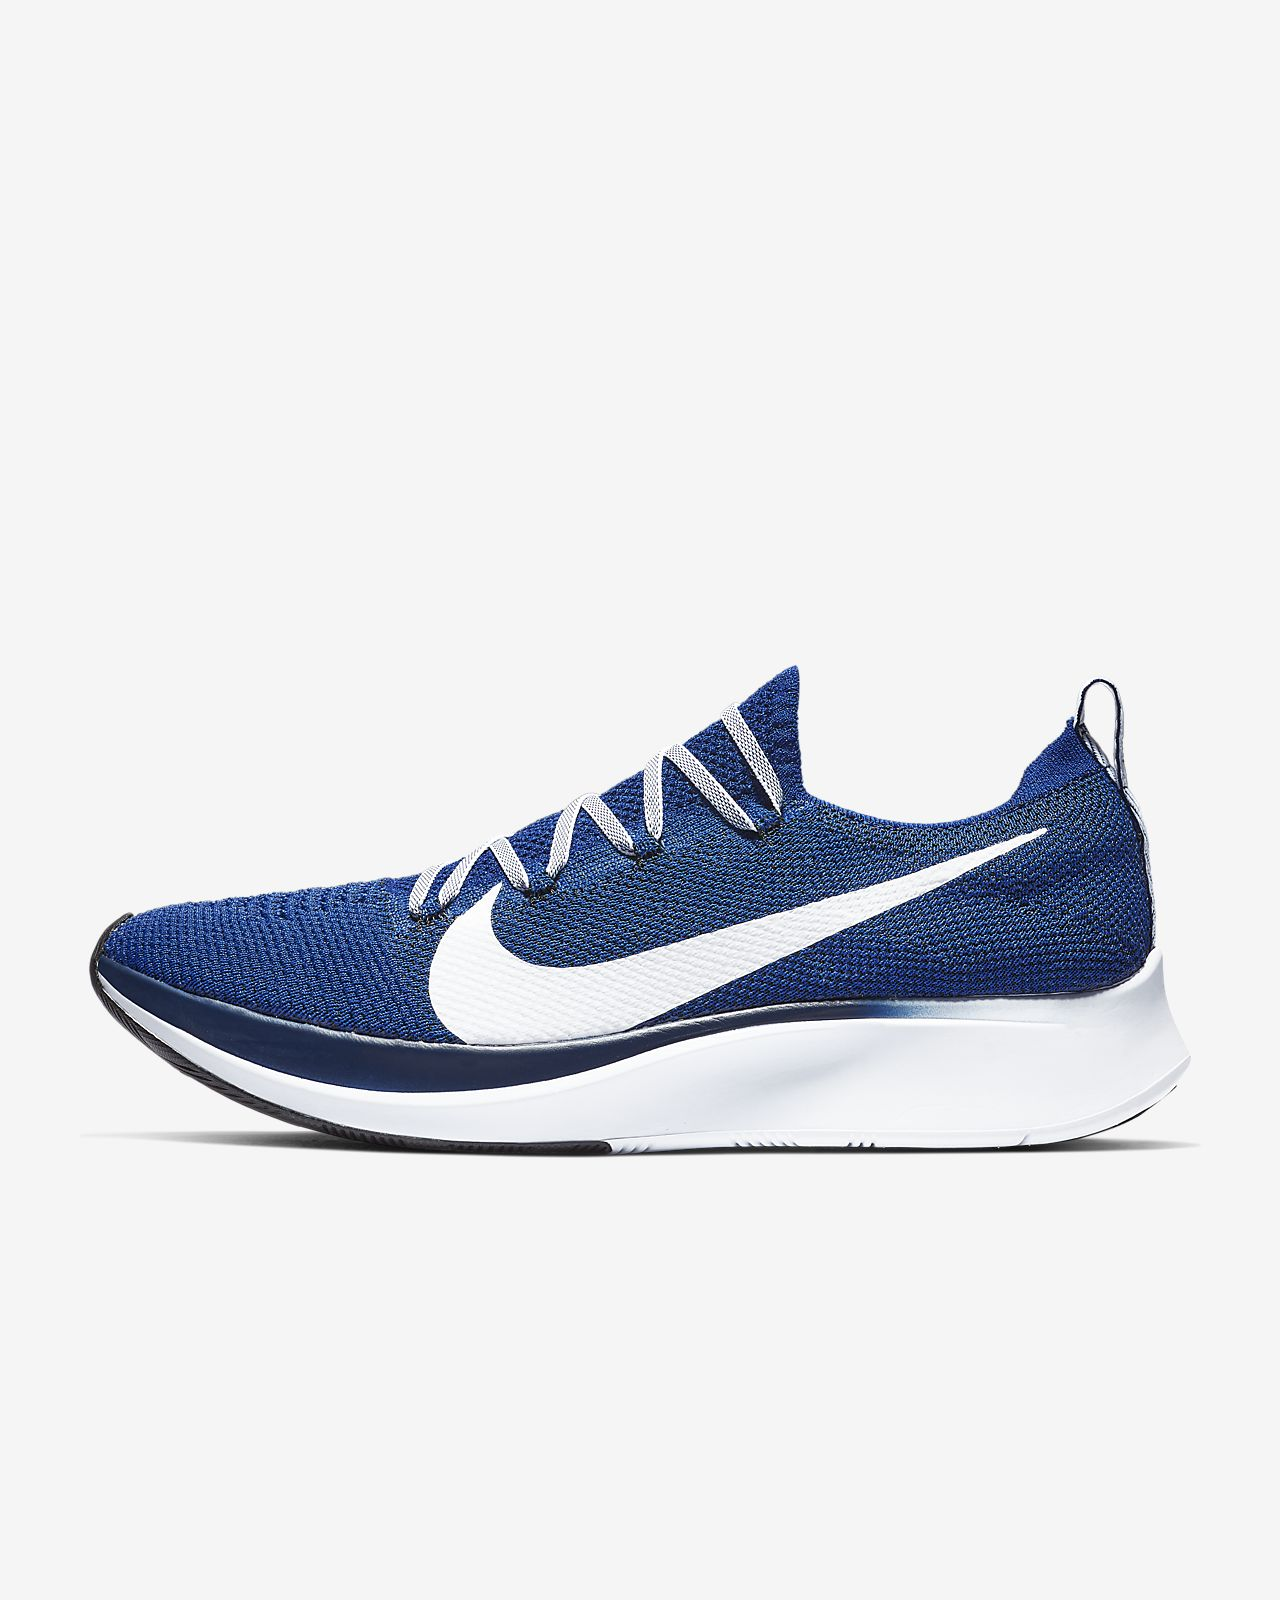 59904c443857 Nike Zoom Fly Flyknit Men s Running Shoe. Nike.com ID